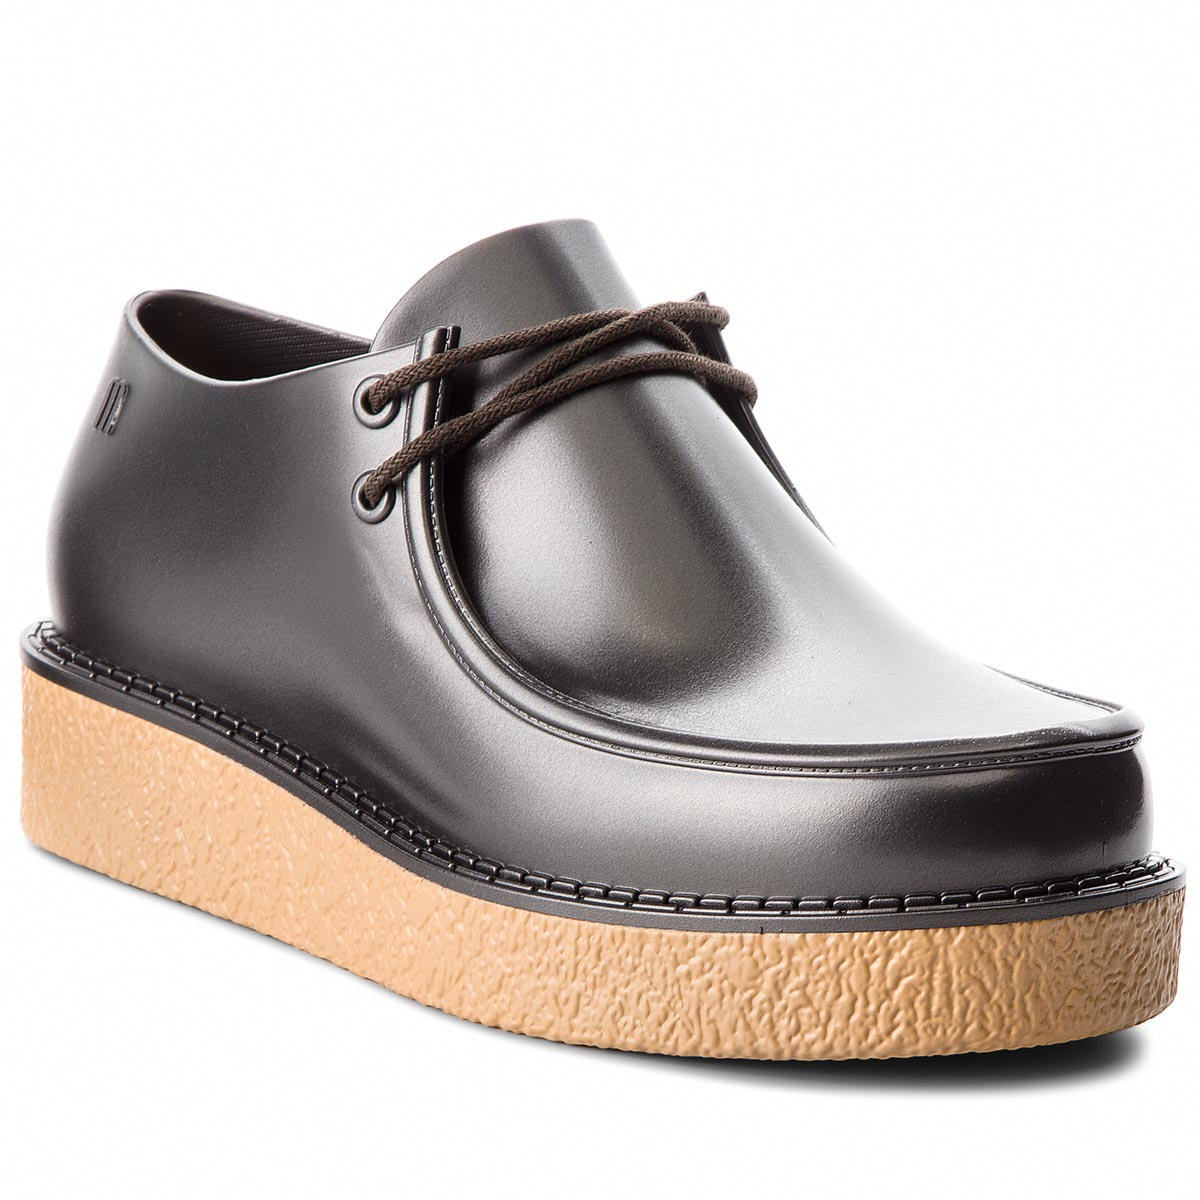 Pantofi MELISSA - Billy Creepers Ad 32318 Beige/Silver 52009